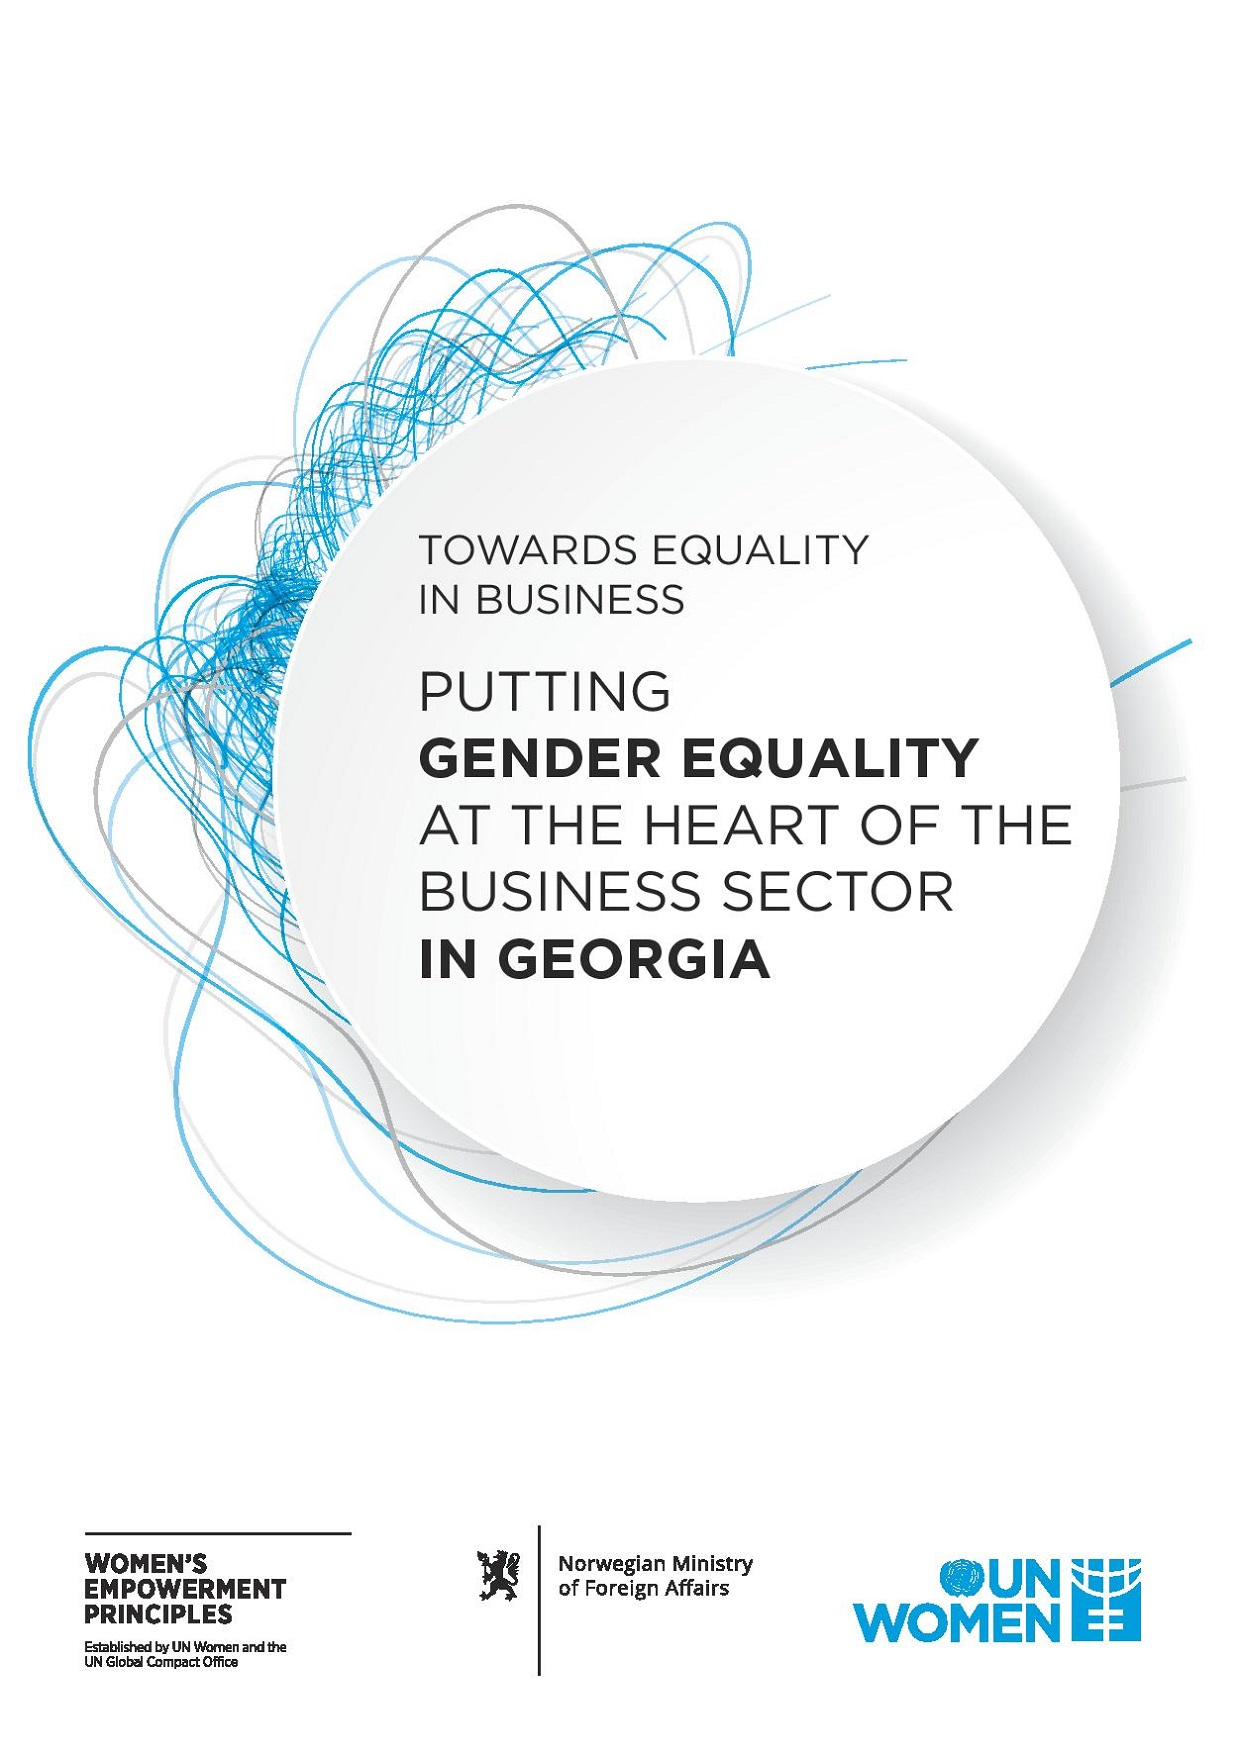 Toward equality in business: Putting gender equality at the heart of the business in Georgia